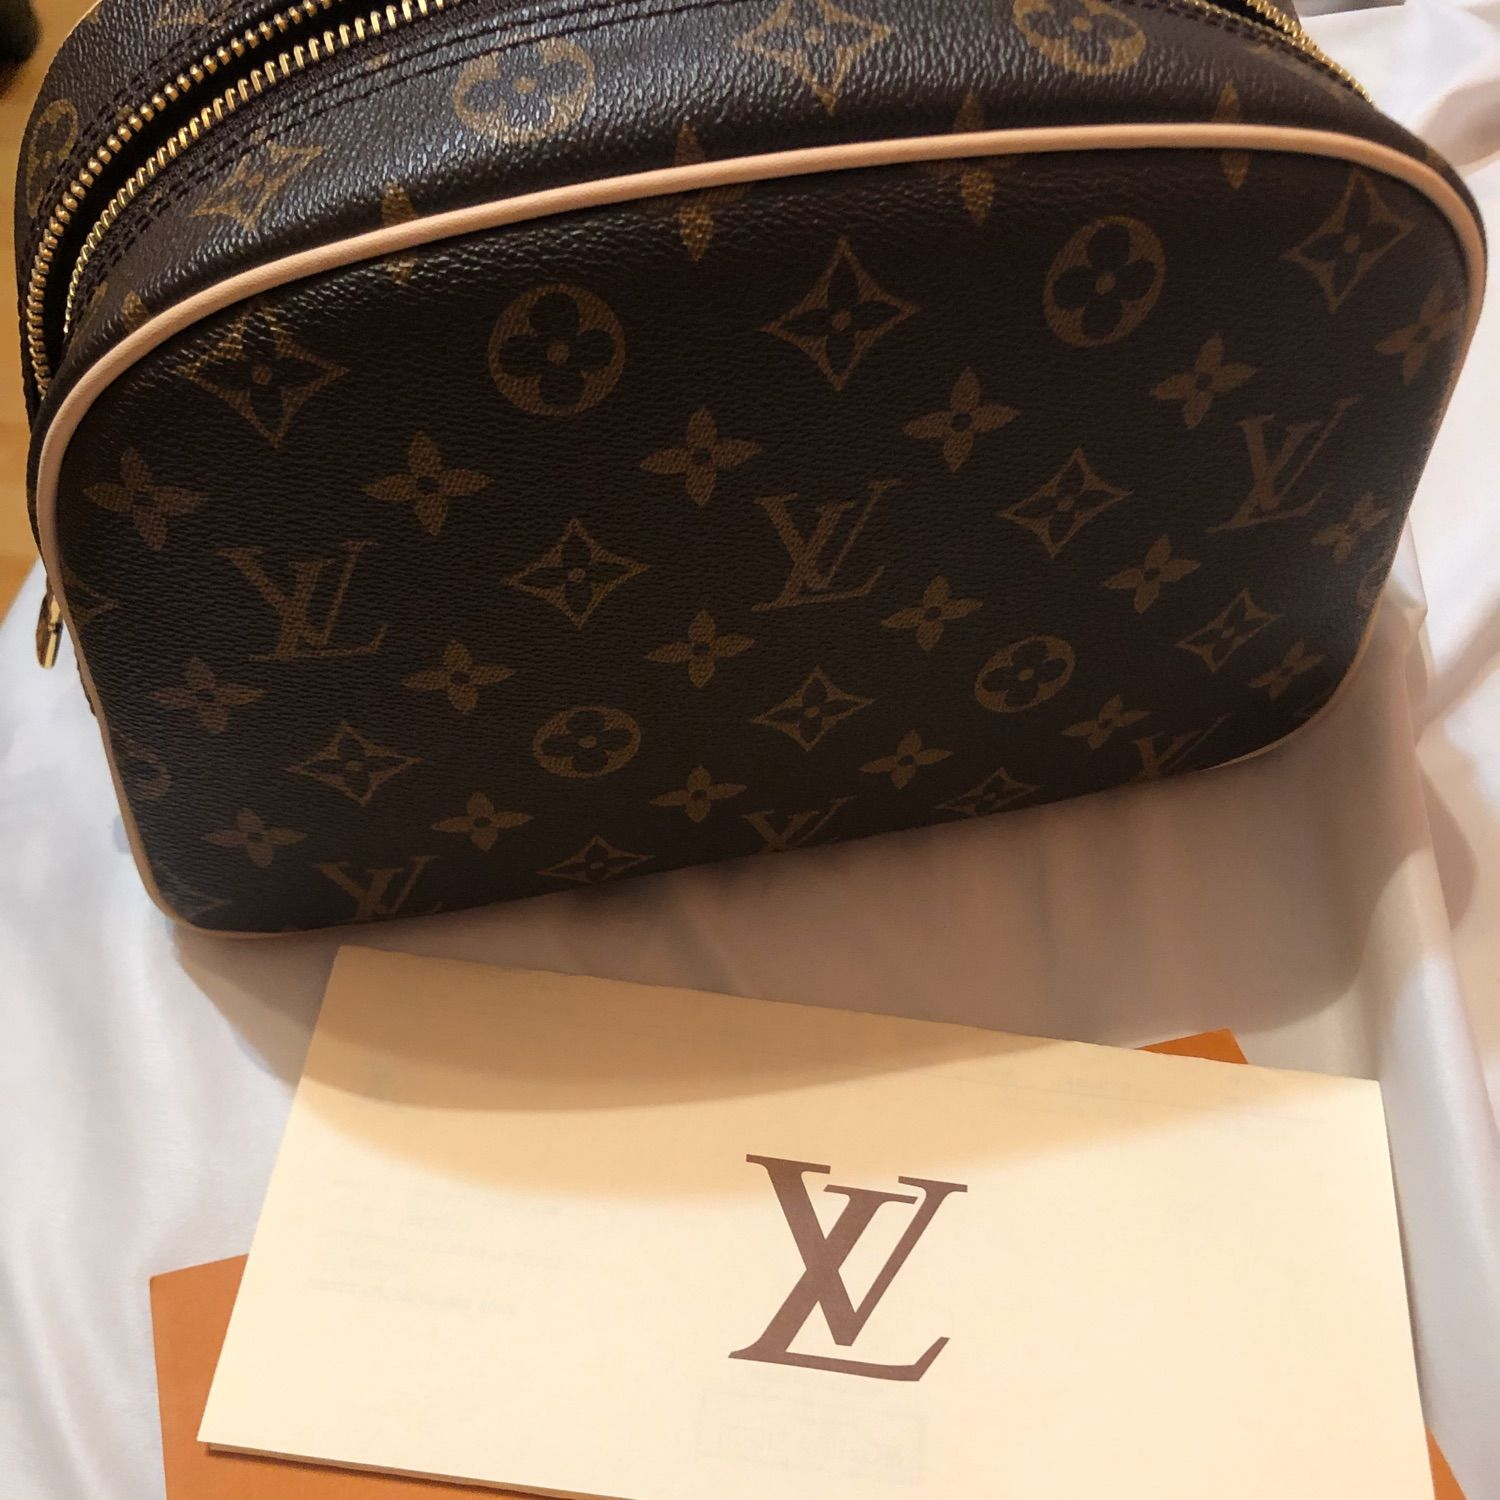 Louis Vuitton 25 Toiletry Bag All items come with louis vuitton original paper shopping bag, yellow dust bag, serial number, authenticity card. louis vuitton 25 toiletry bag